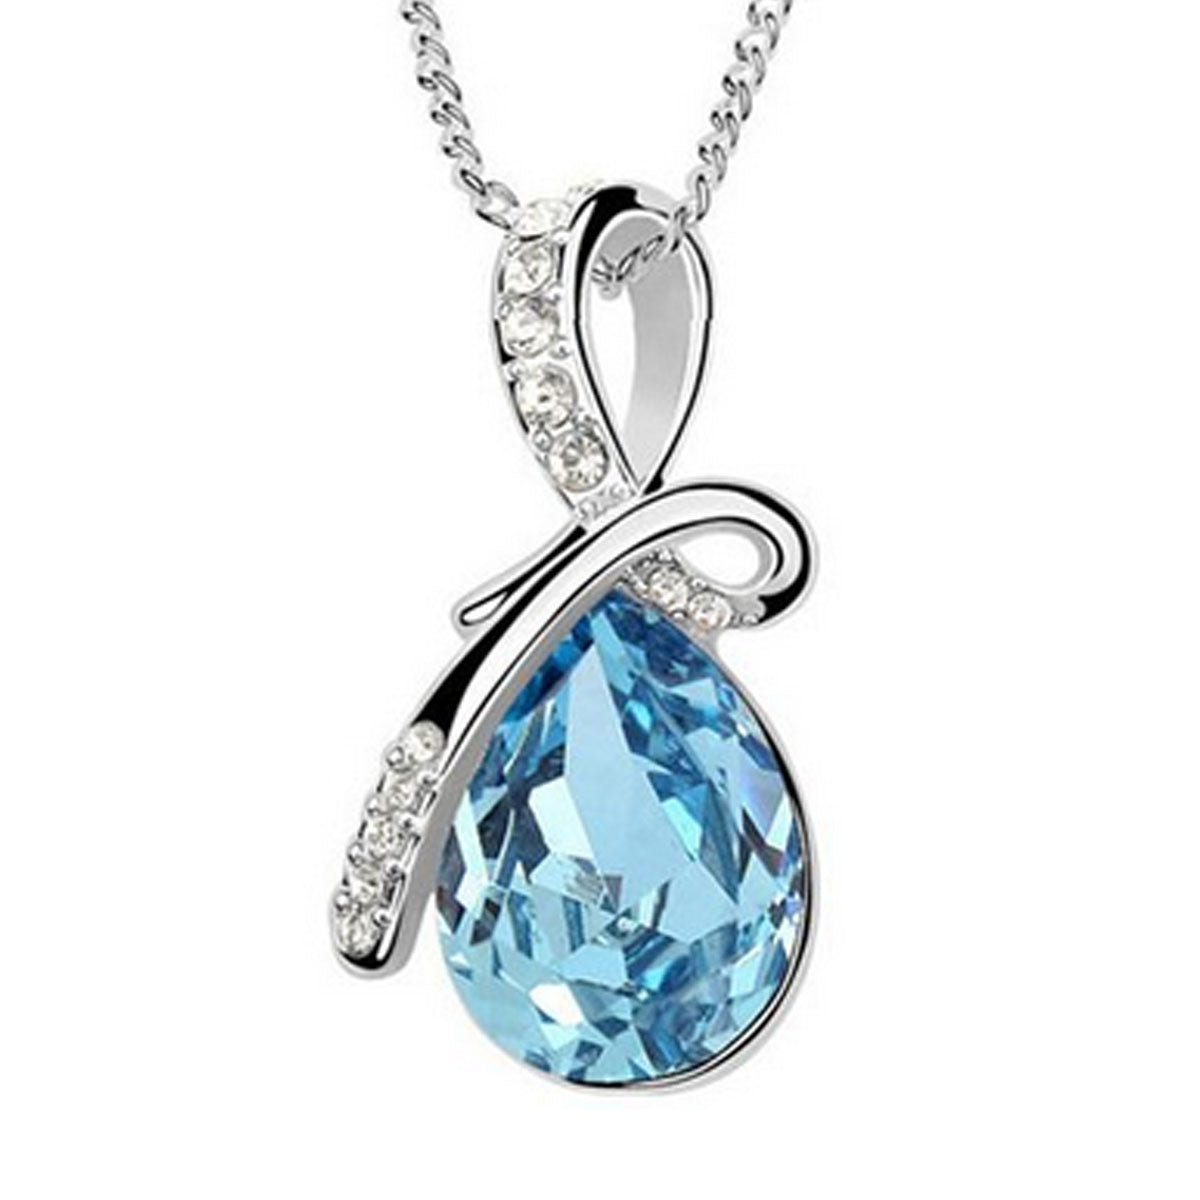 Wrapables Eternal Love Swarovski Elements Crystal Teardrop Pendant Necklace